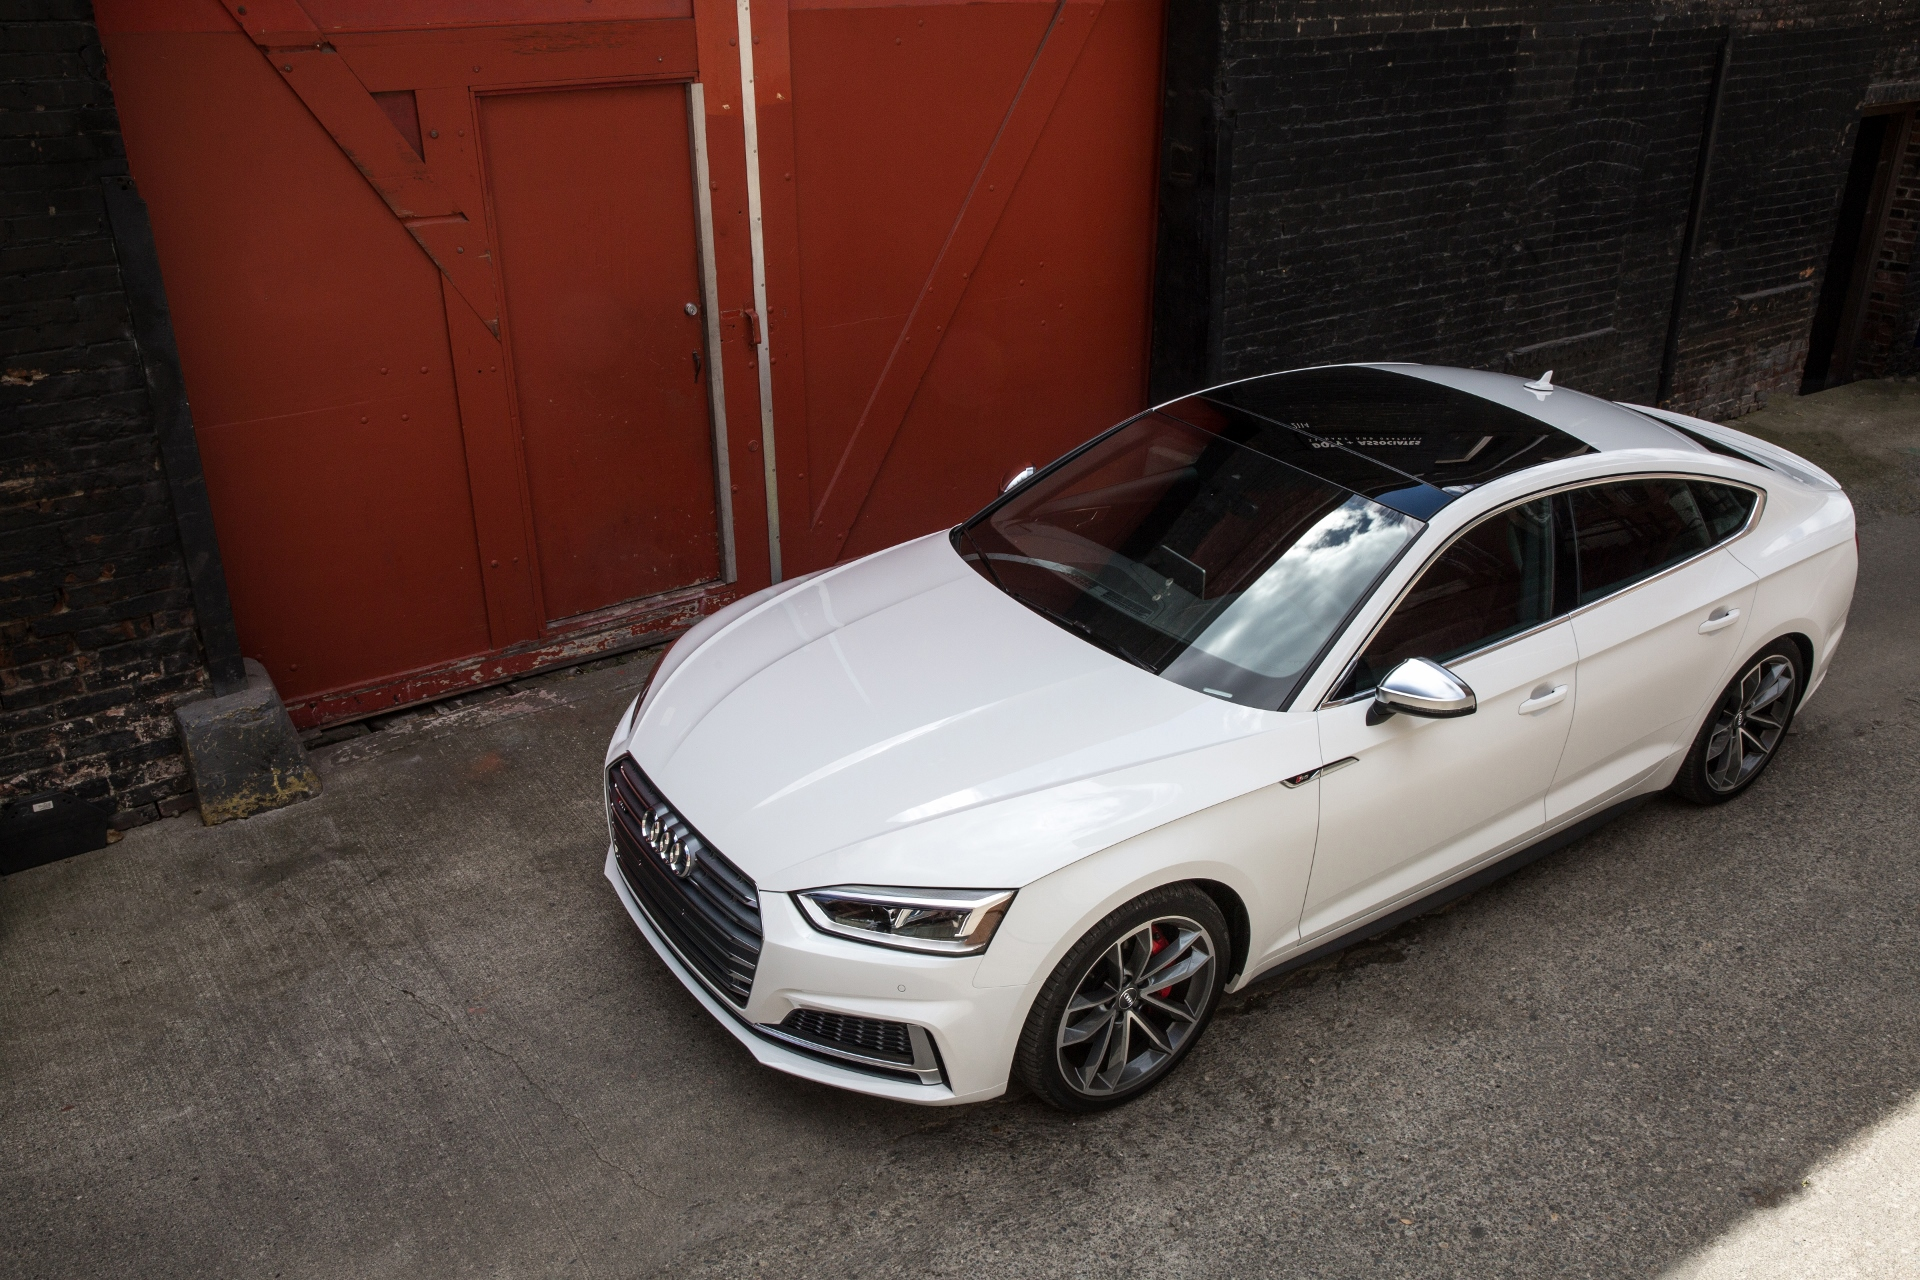 2018 audi a5 s5 sportback first drive review a niche worth exploring. Black Bedroom Furniture Sets. Home Design Ideas